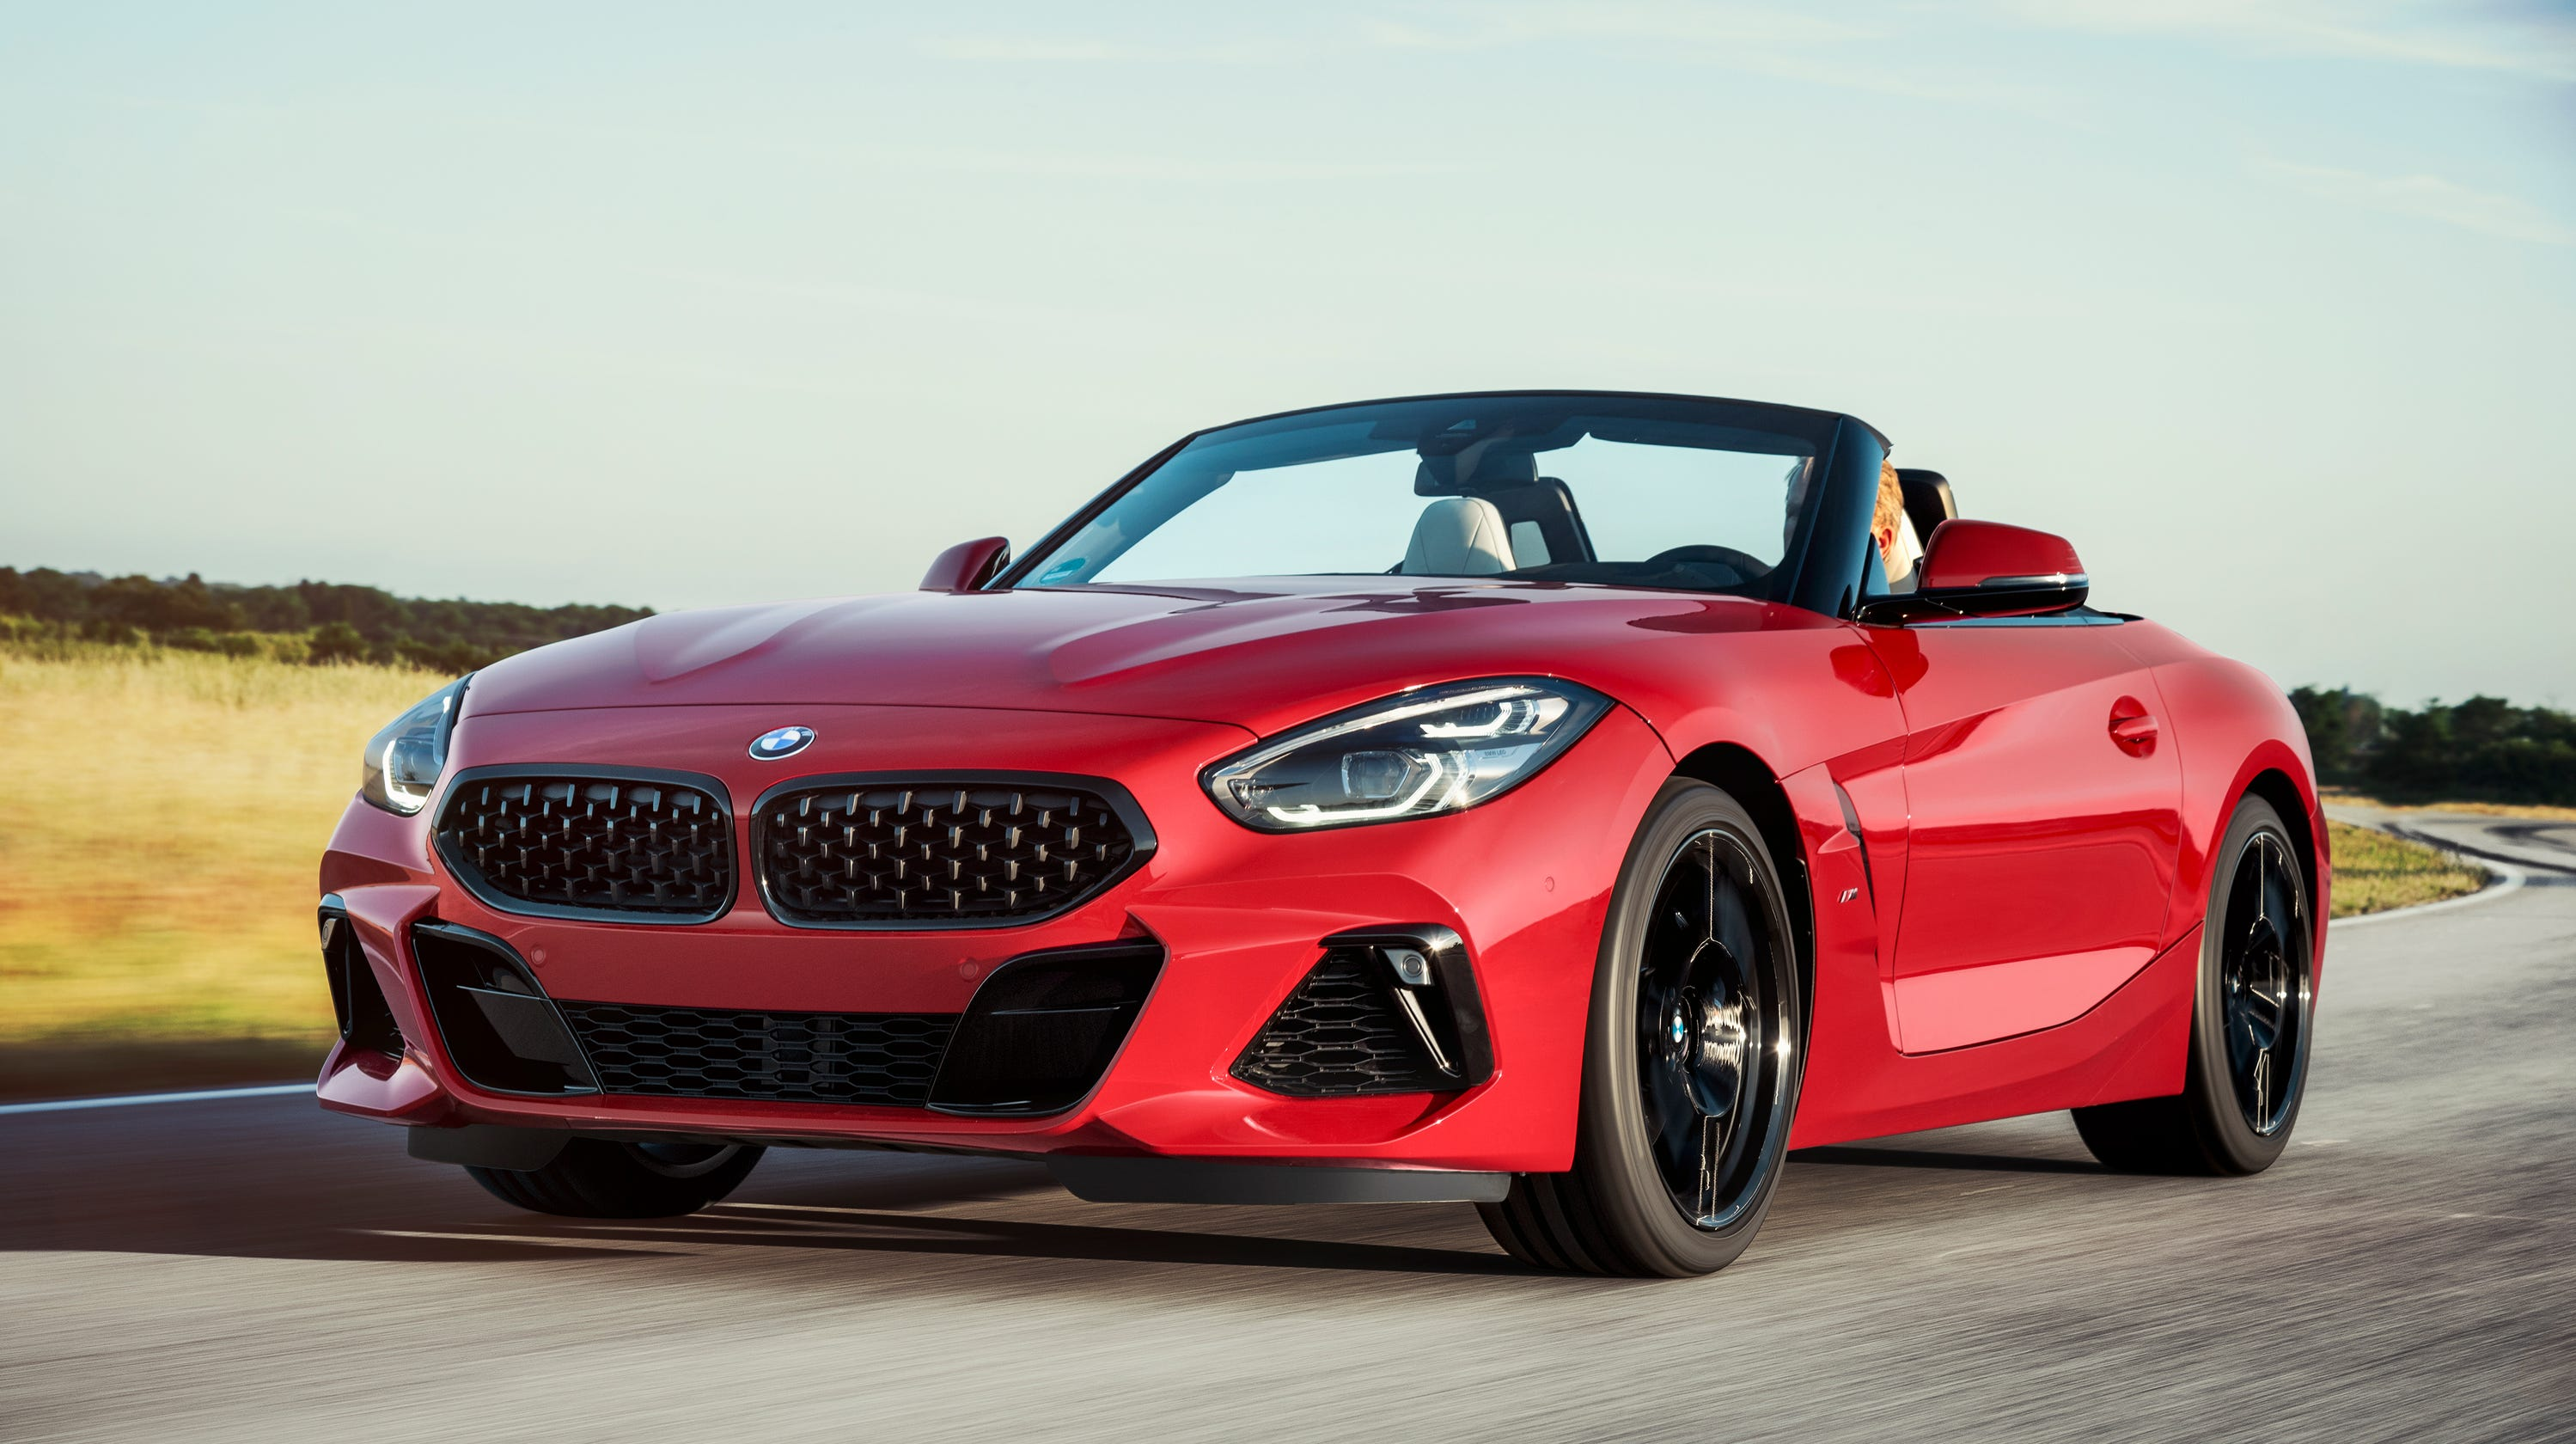 2019 bmw z4 roadster revealed open top vehicle debuts at pebble beach